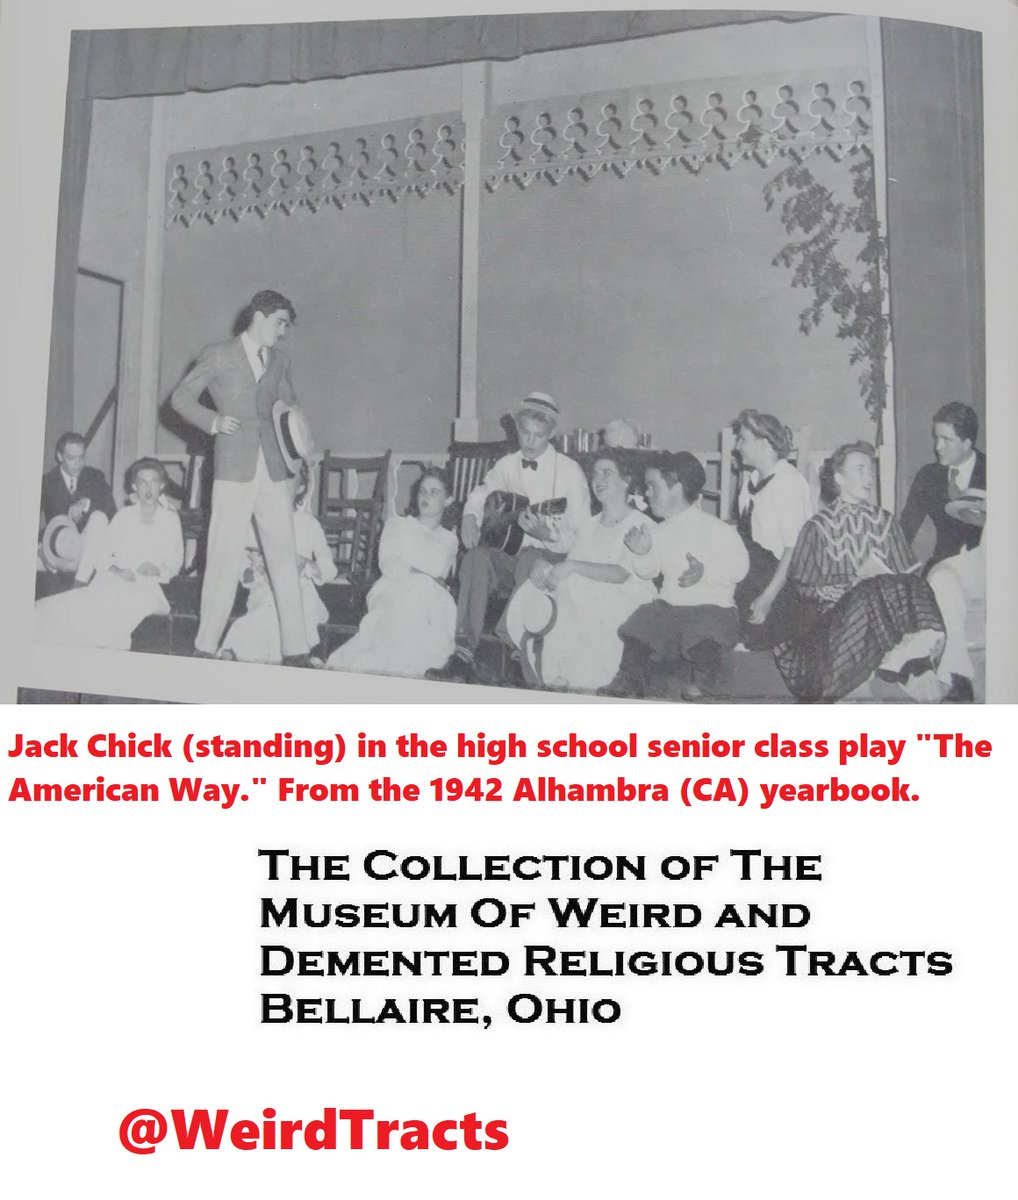 For the museum's feature article on the Jack Chick h.s. yearbooks, we added a photo of Jack in his senior play (with a boater hat!)  The article is here https://t.co/GEtqnbuLVQ  Archive of weird tracts https://t.co/yzZOVT4Moq  #MuseumFromHome  #MuseumsUnlocked #MuseumActivism https://t.co/KHc9NBUcy1